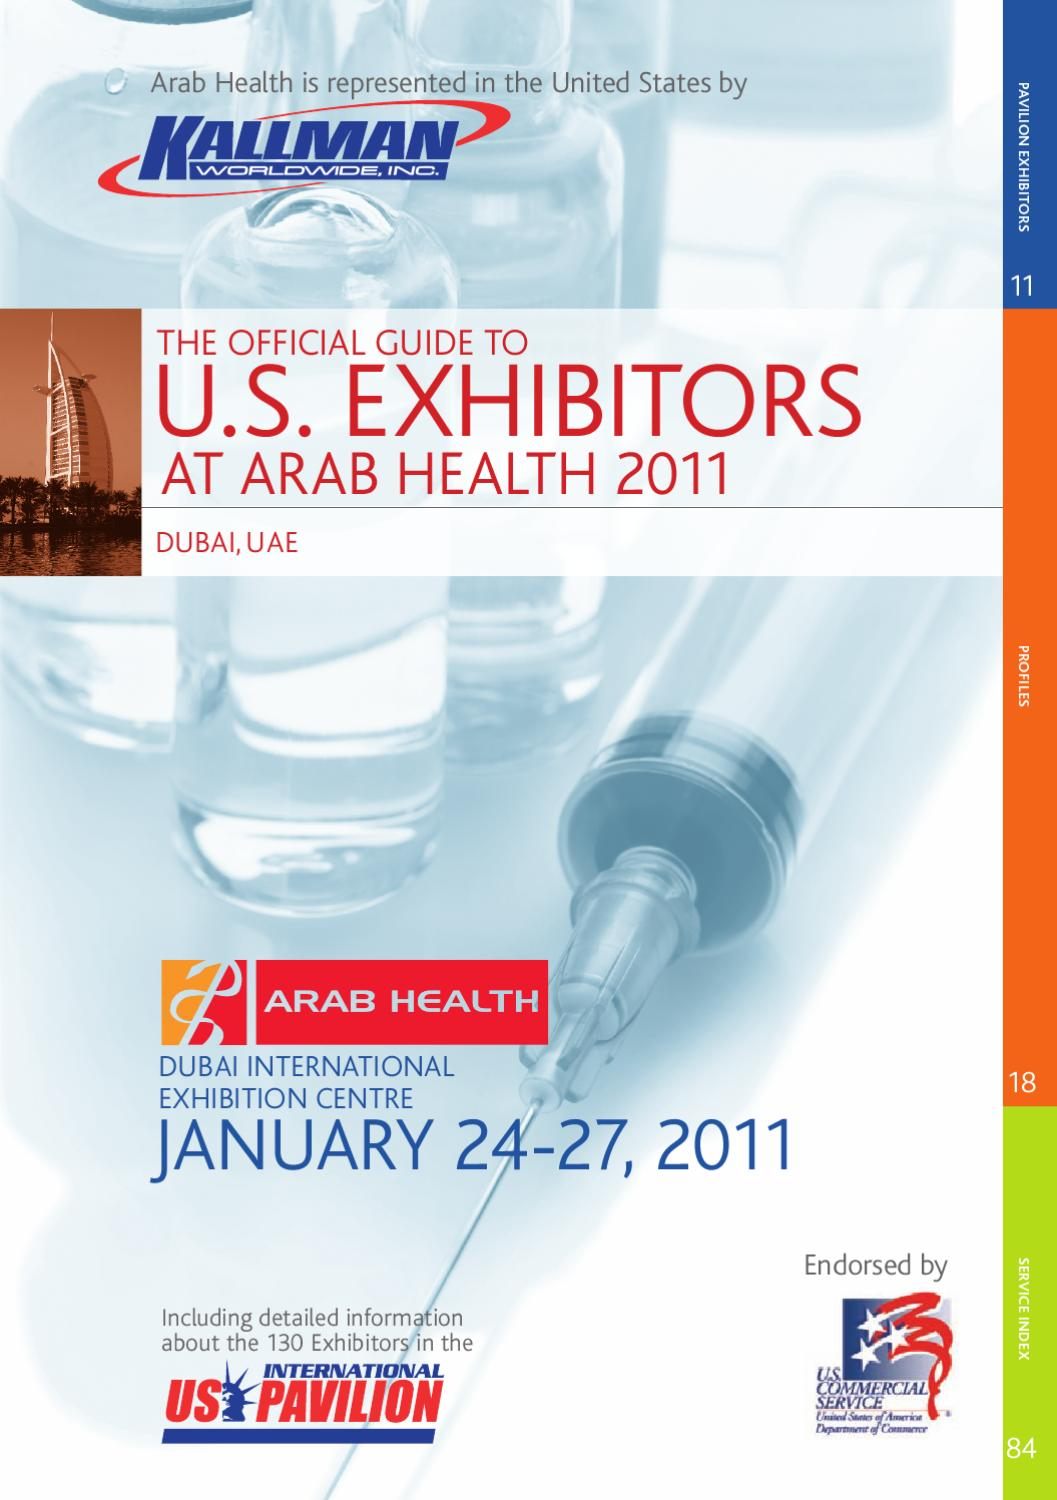 Guide to U.S. Exhibitors at Arab Health 2011 by Kallman